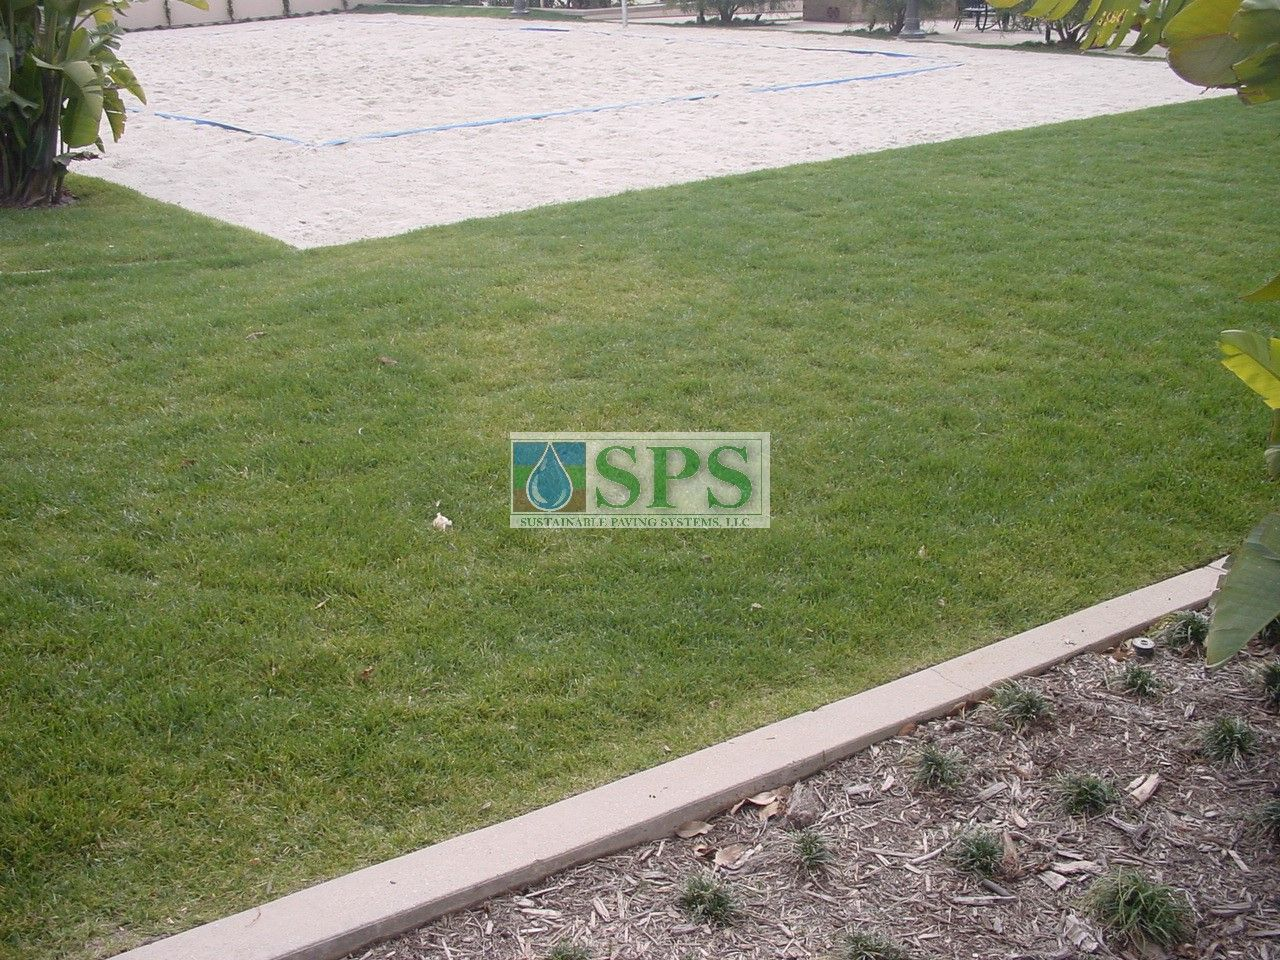 The Volleyball Court has complete Emergency Vehichle Access and Water Management without compromise to the court itself by employing Concealed Grasscrete Systems at Woodbury Community Development in Irvine, CA.